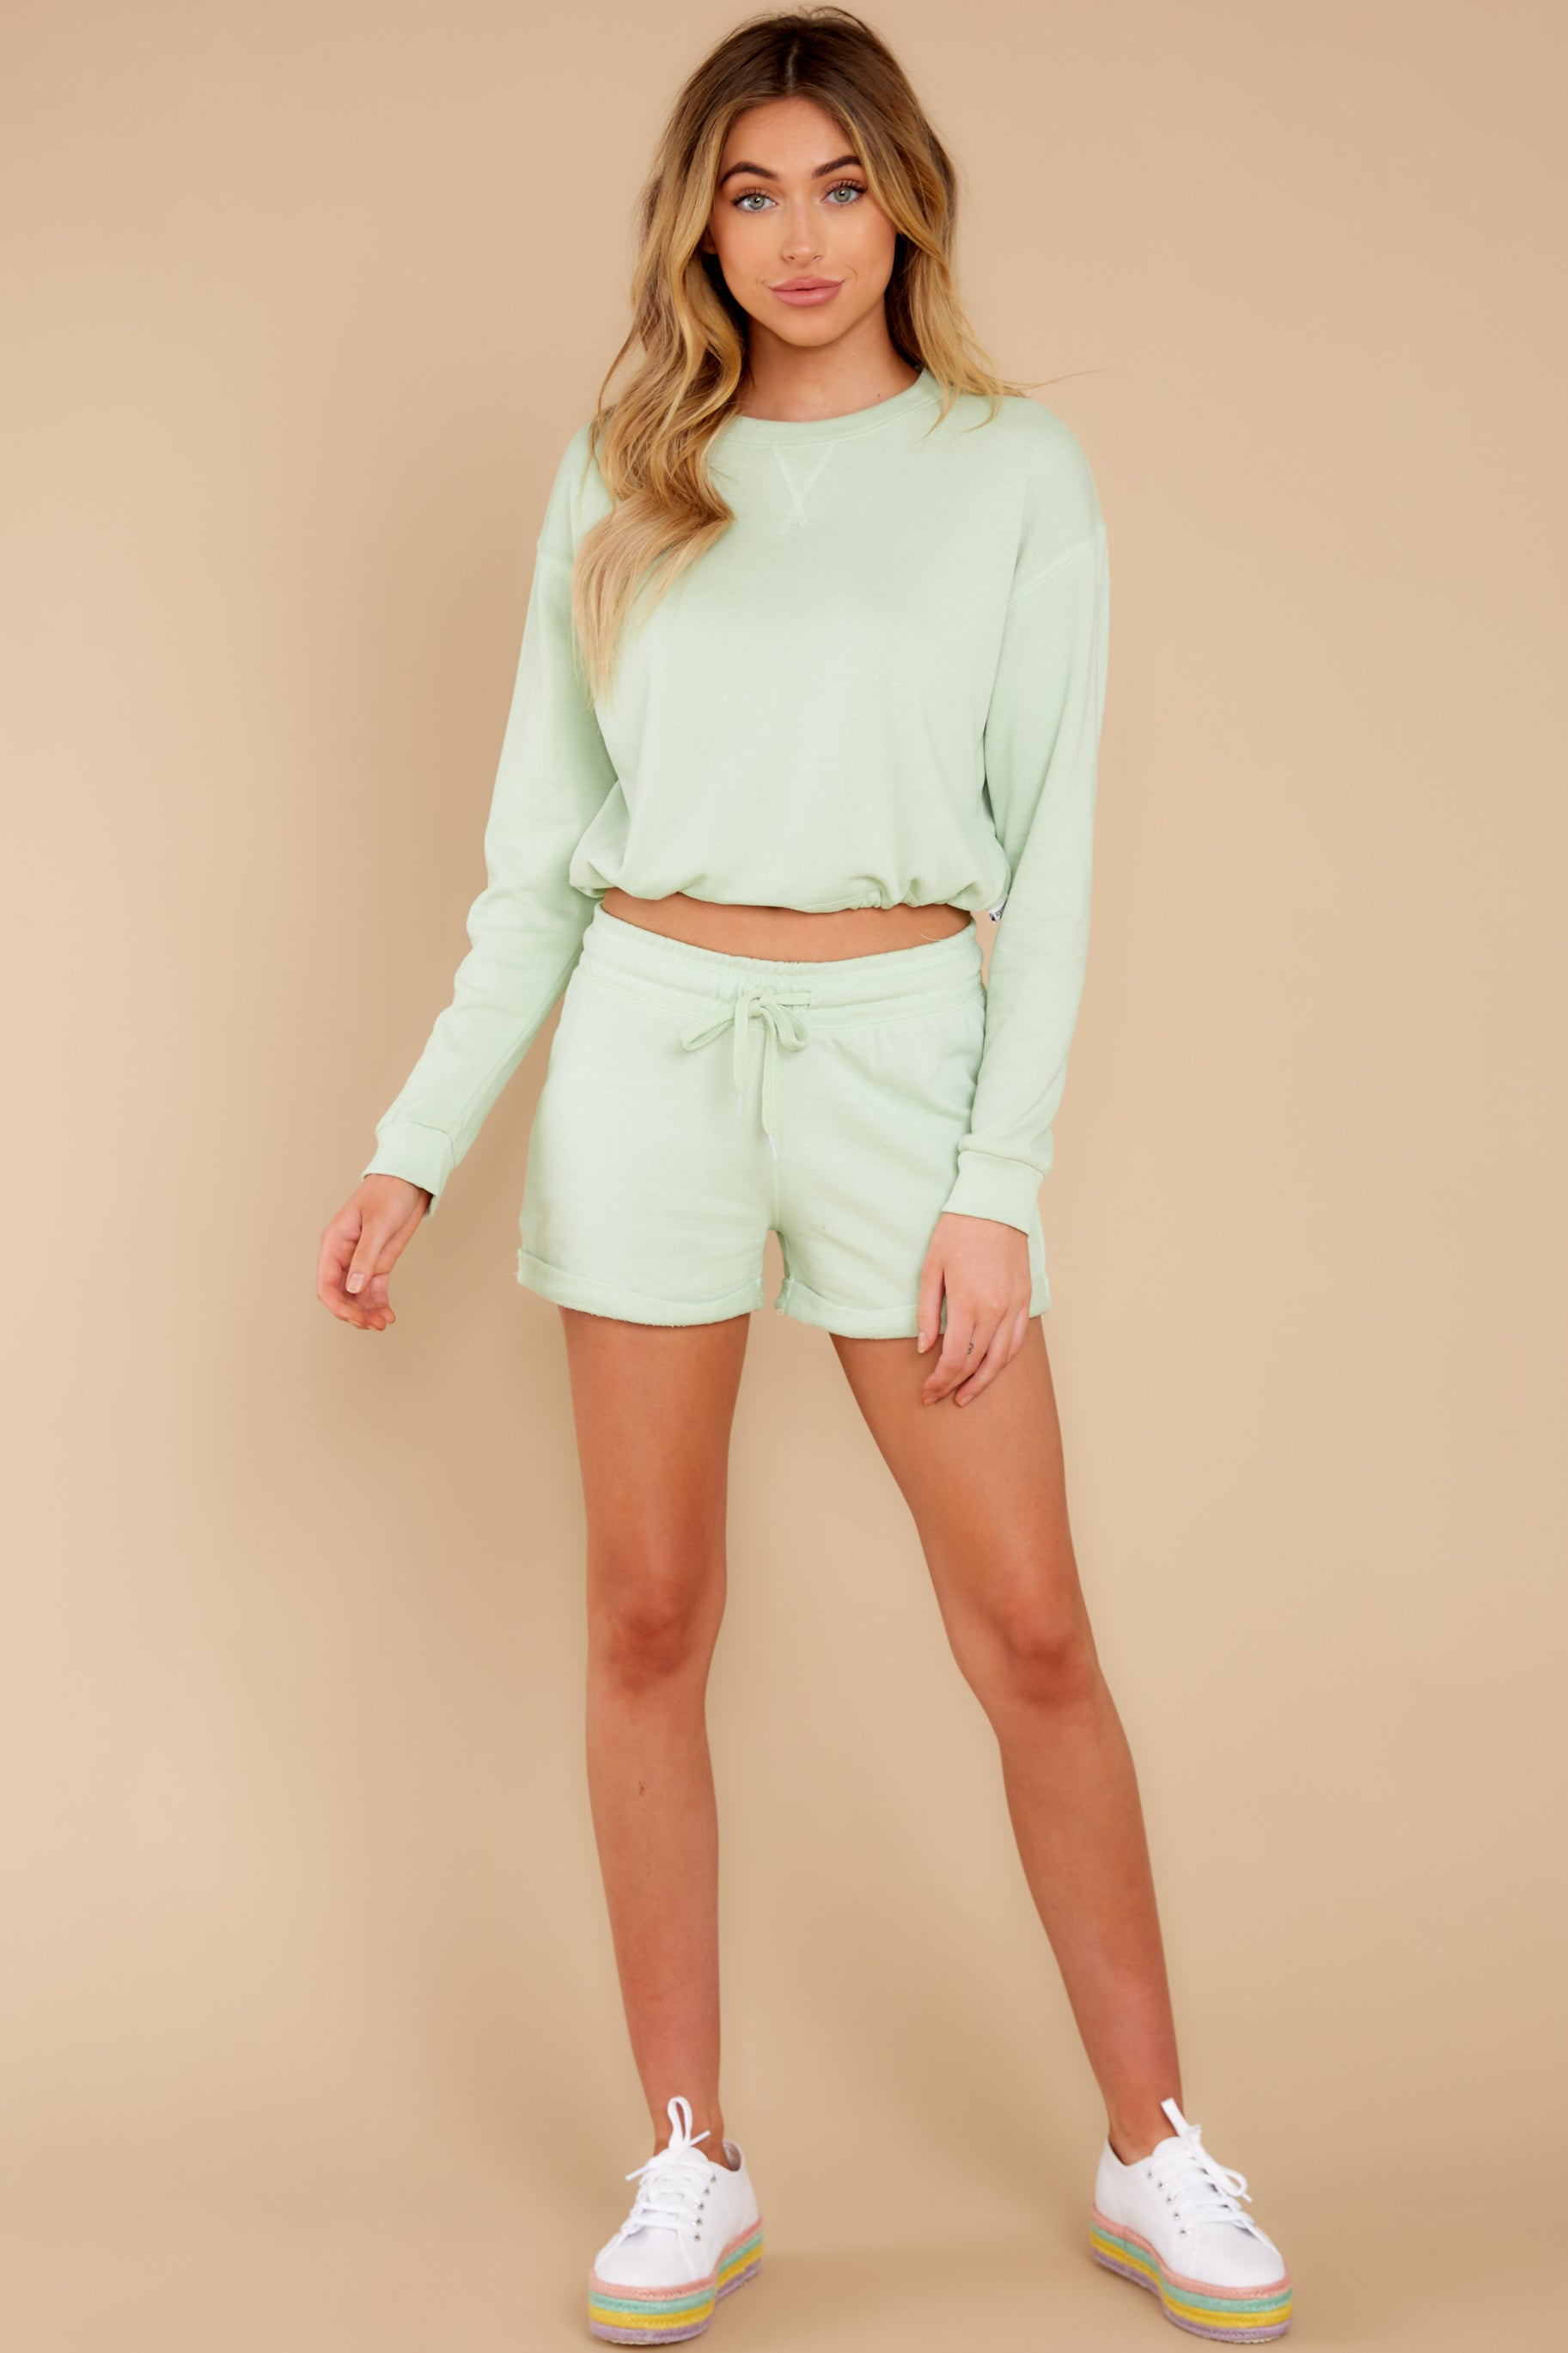 5 Such A Sweetheart Pastel Green Shorts at reddress.com